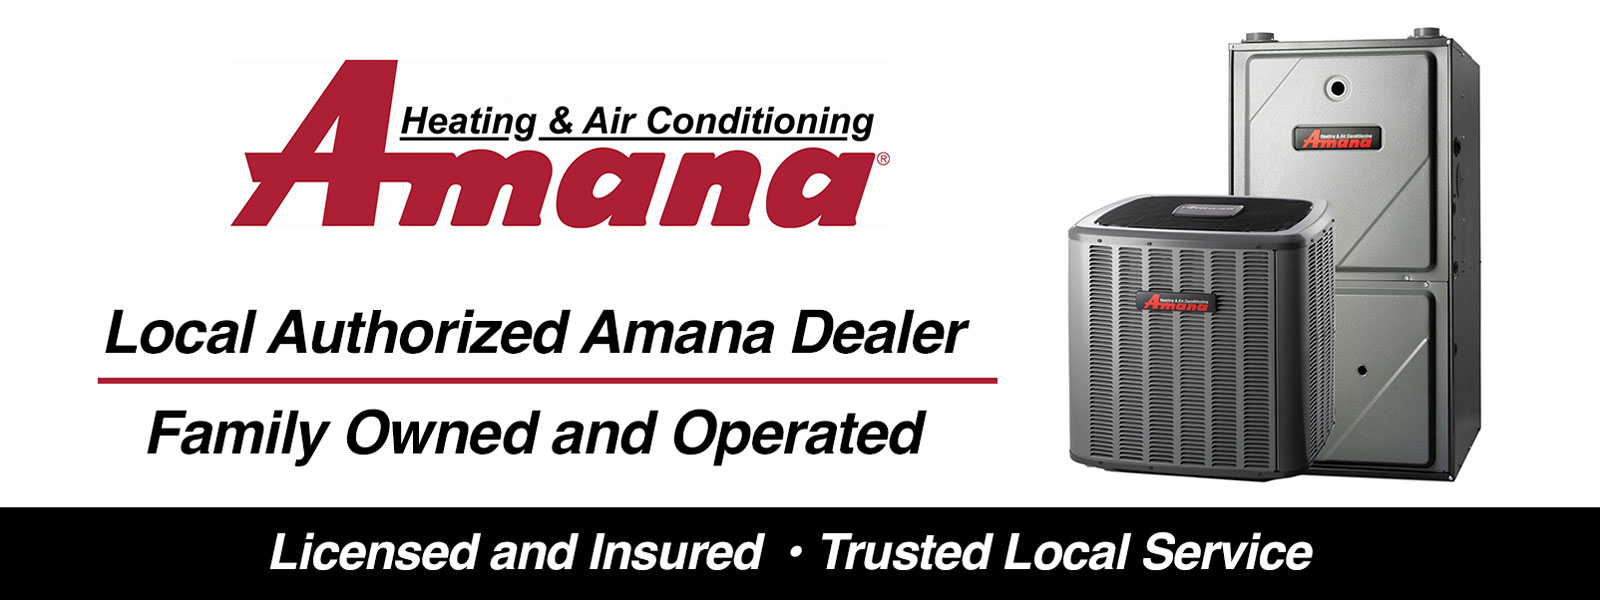 Amana Home Air Conditioning Authorized Dealer